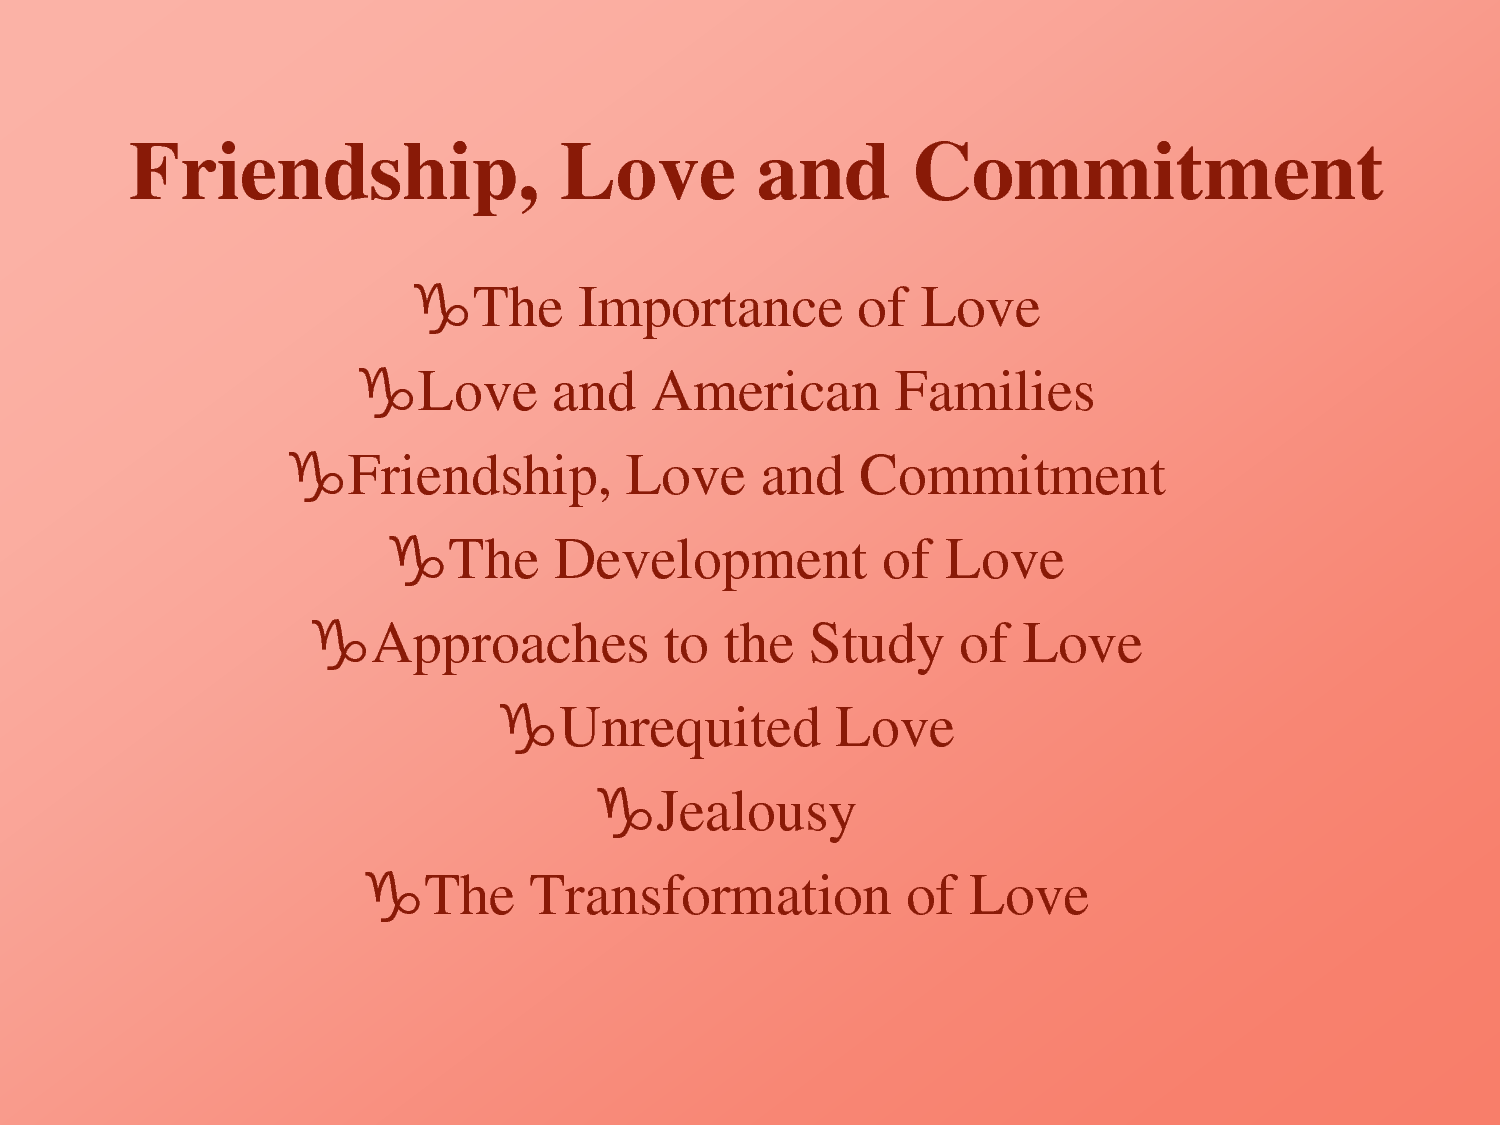 Without a commitment to gay relationships